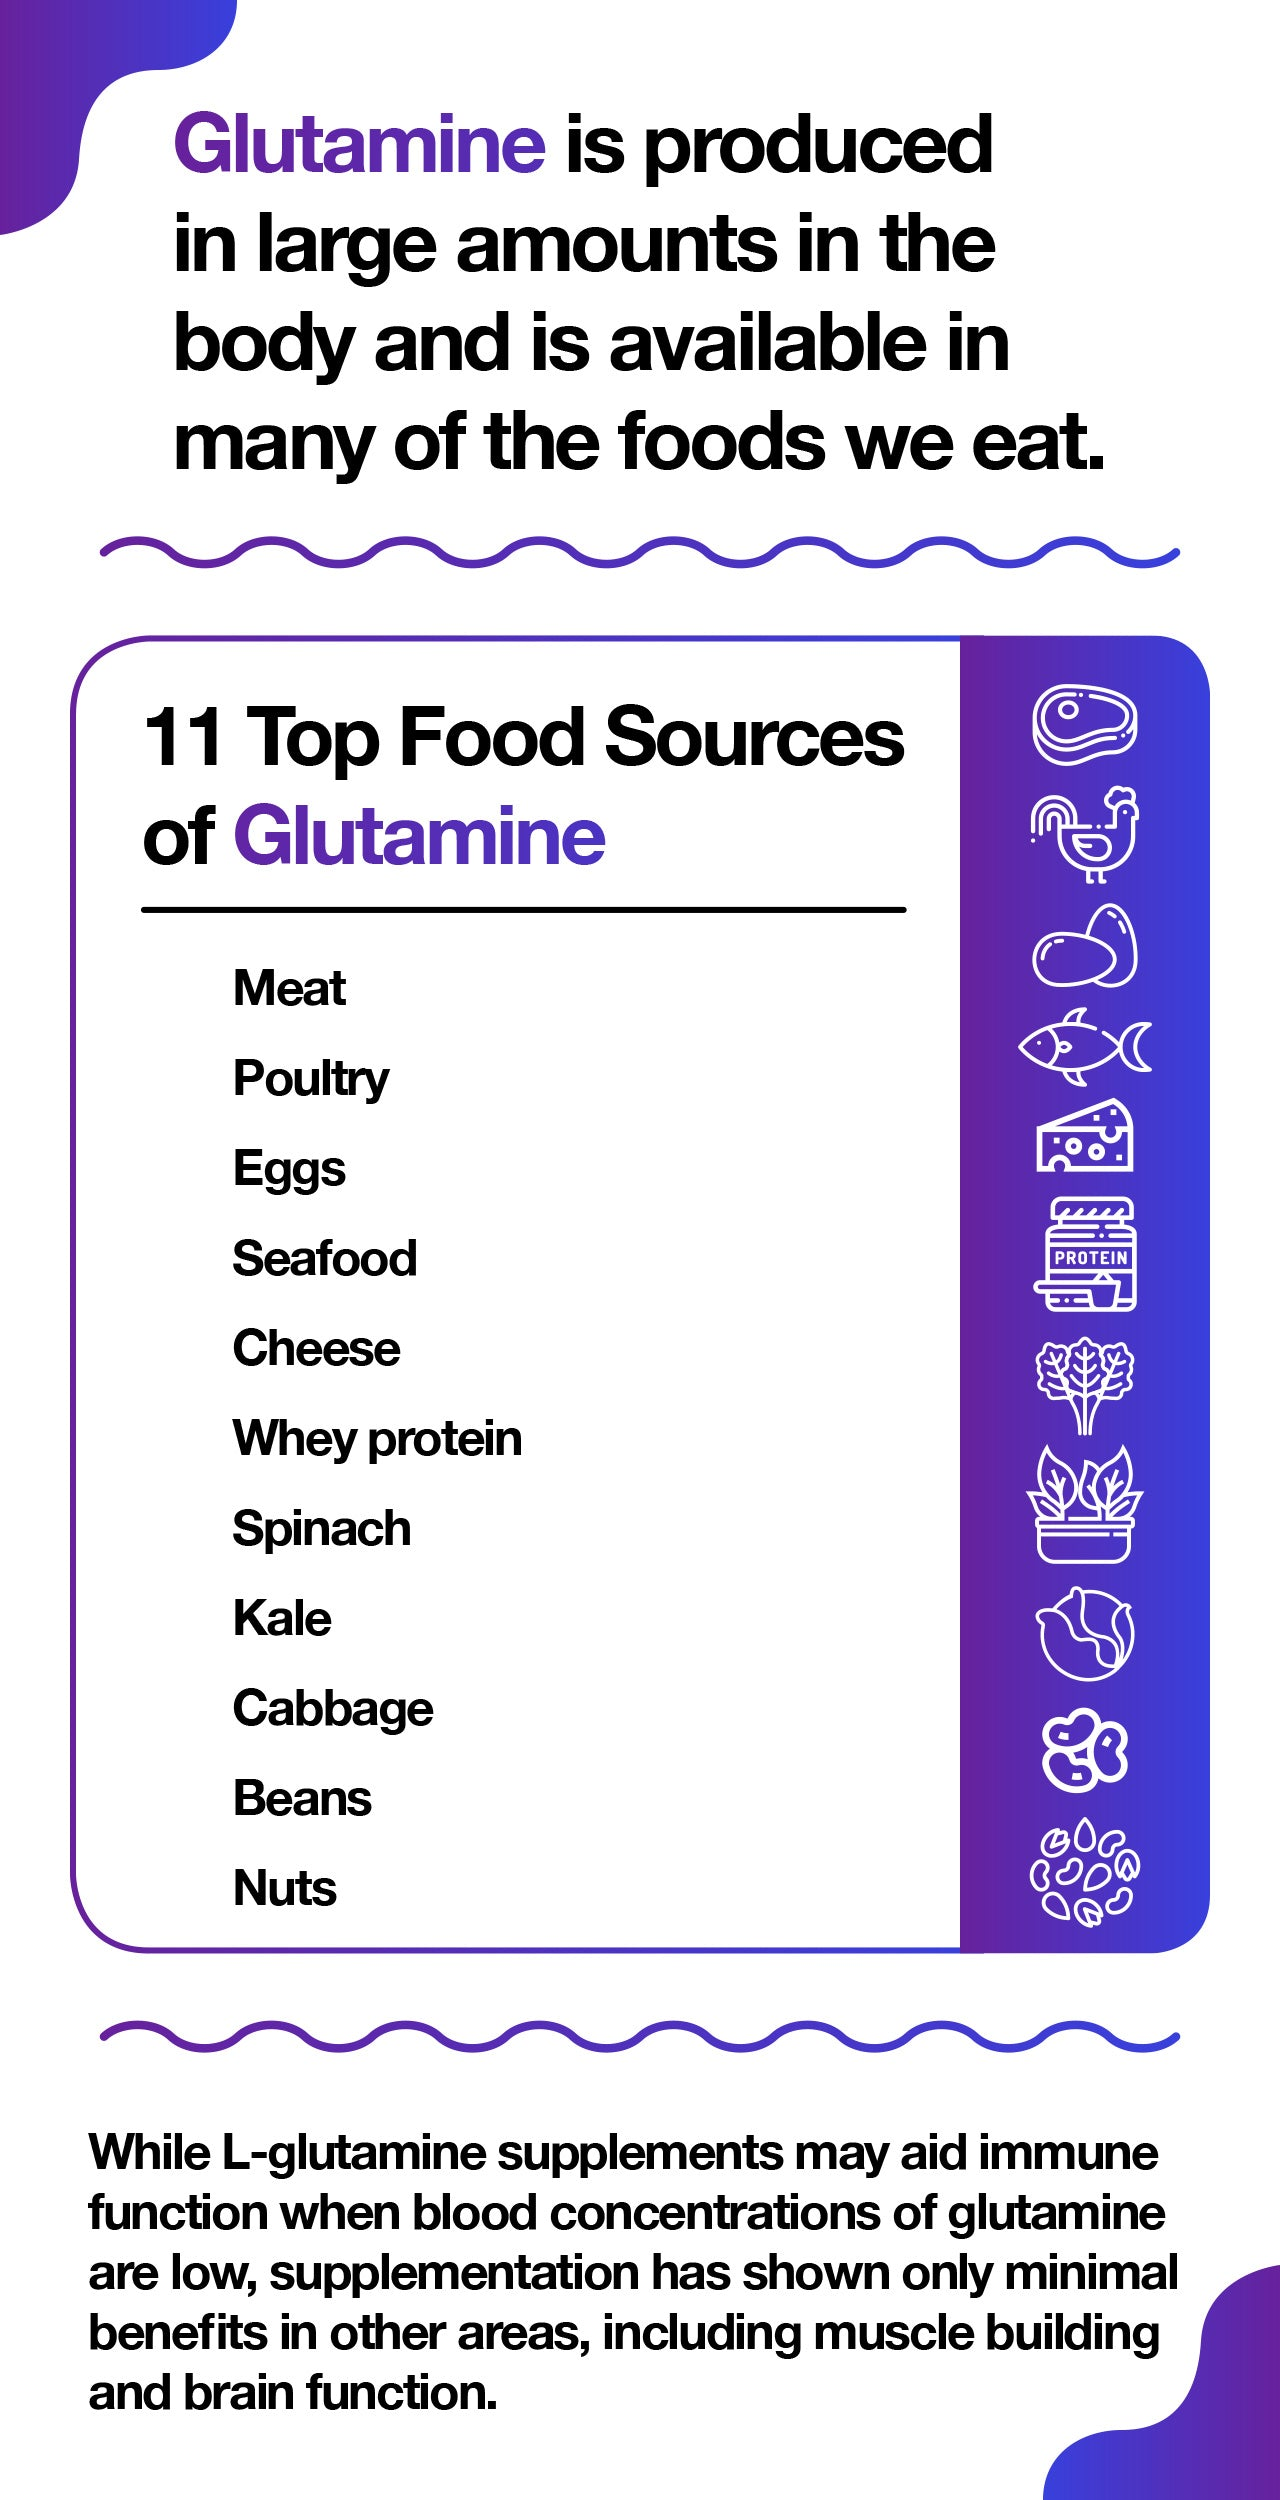 should you take a glutamine supplement?